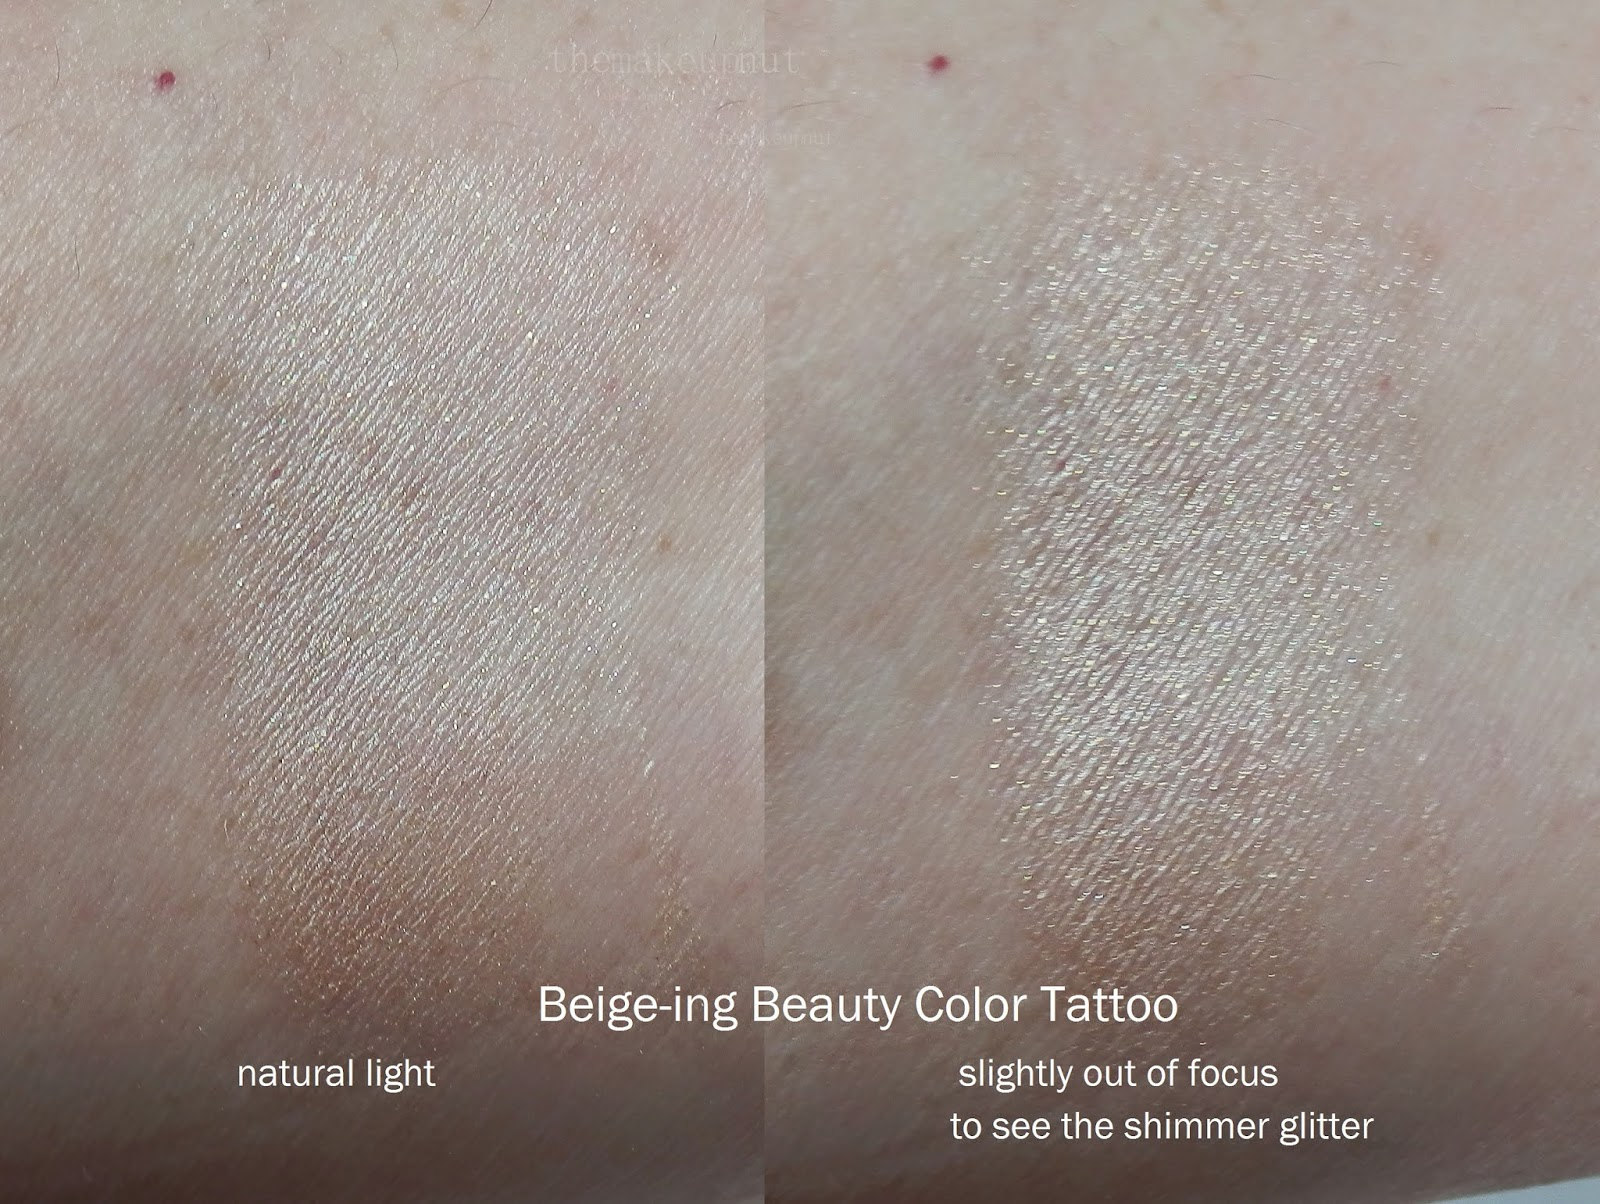 Beige-ing Beauty Color Tattoo